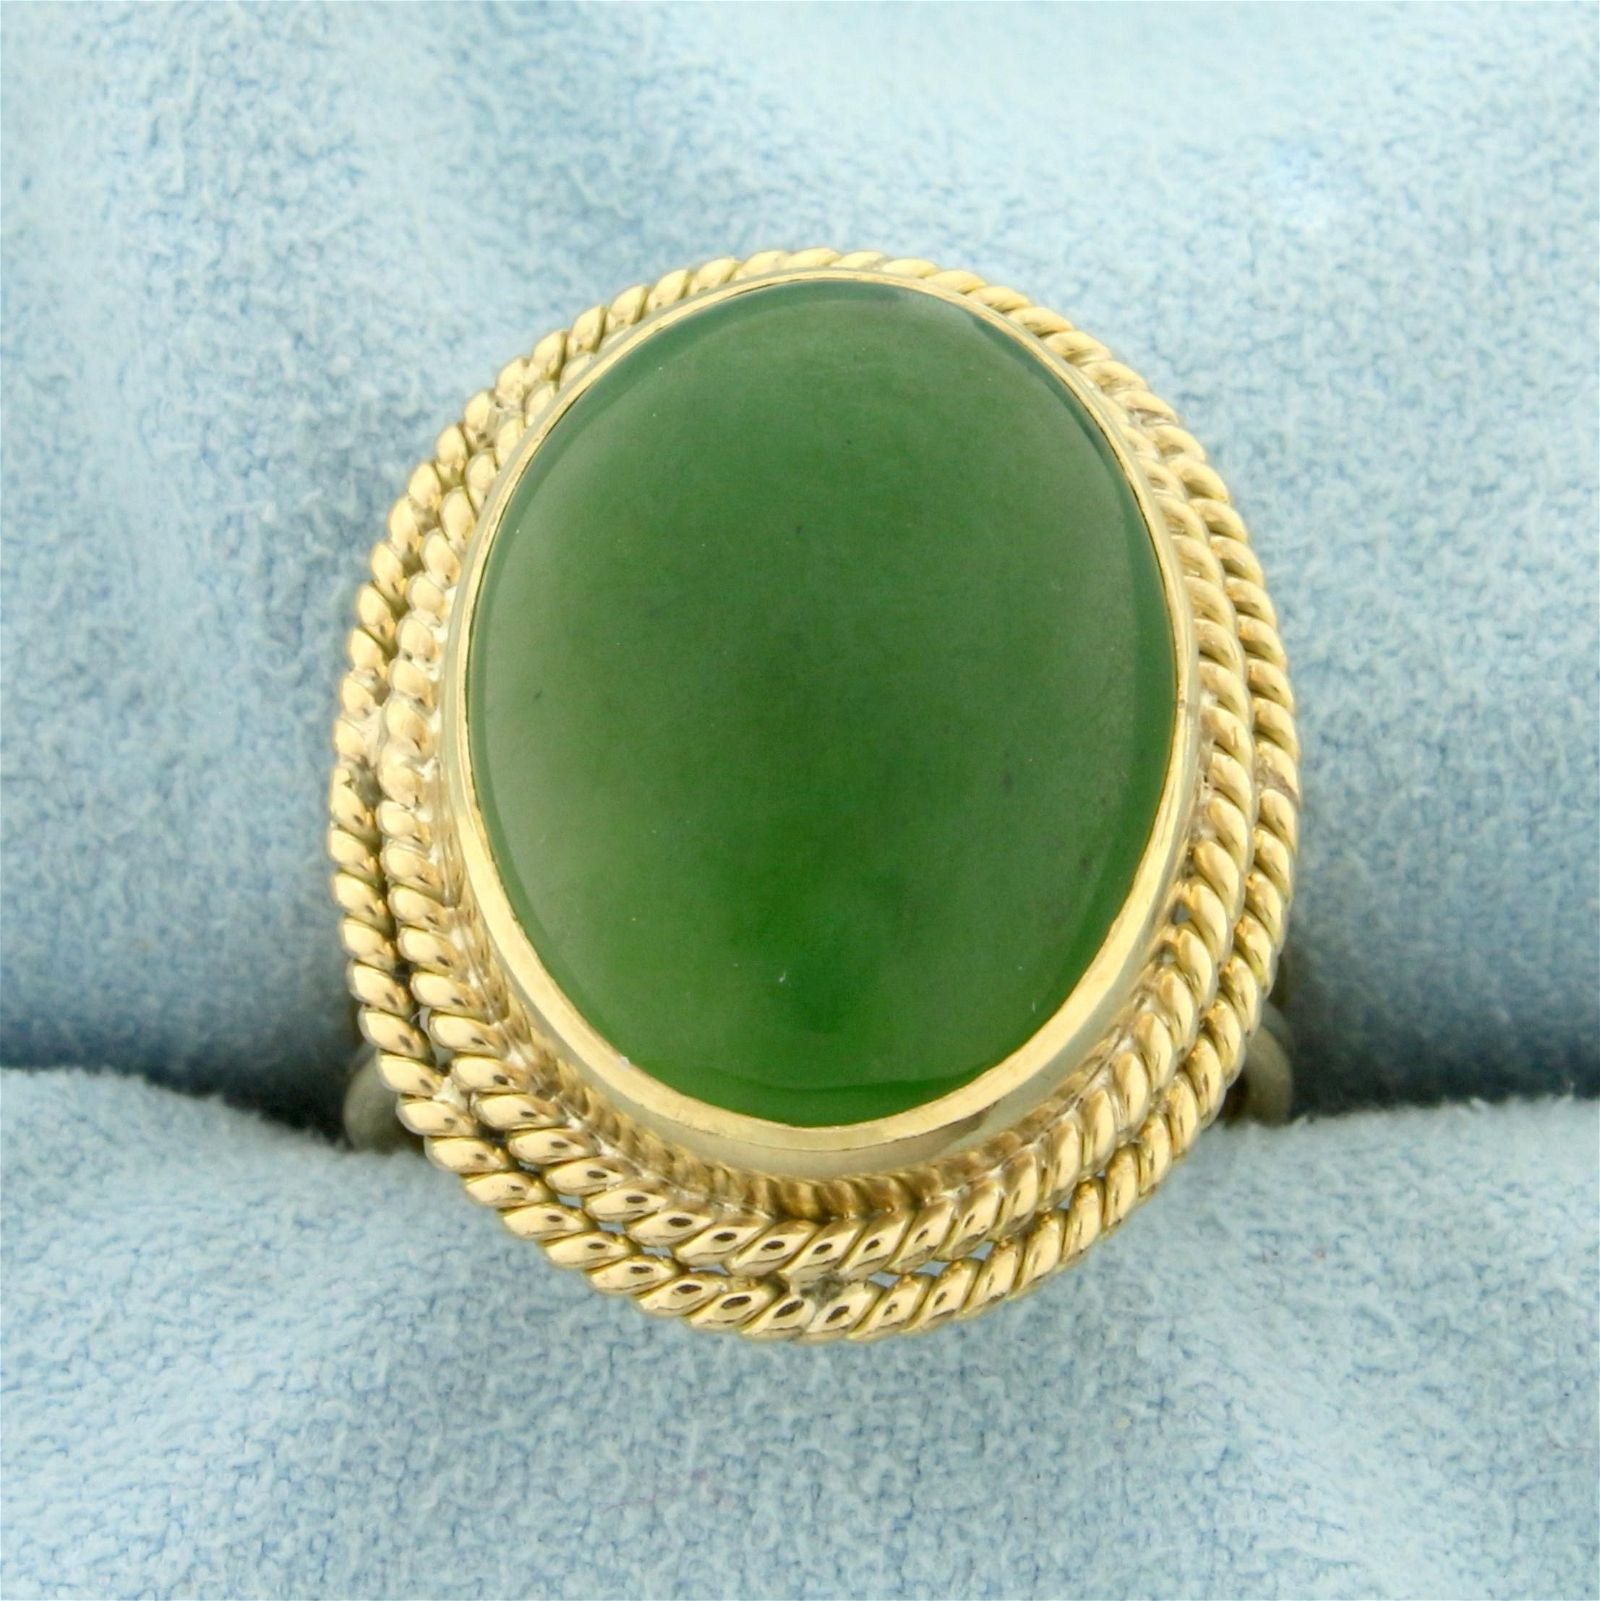 Vintage Oval Jade Ring in 14K Yellow Gold